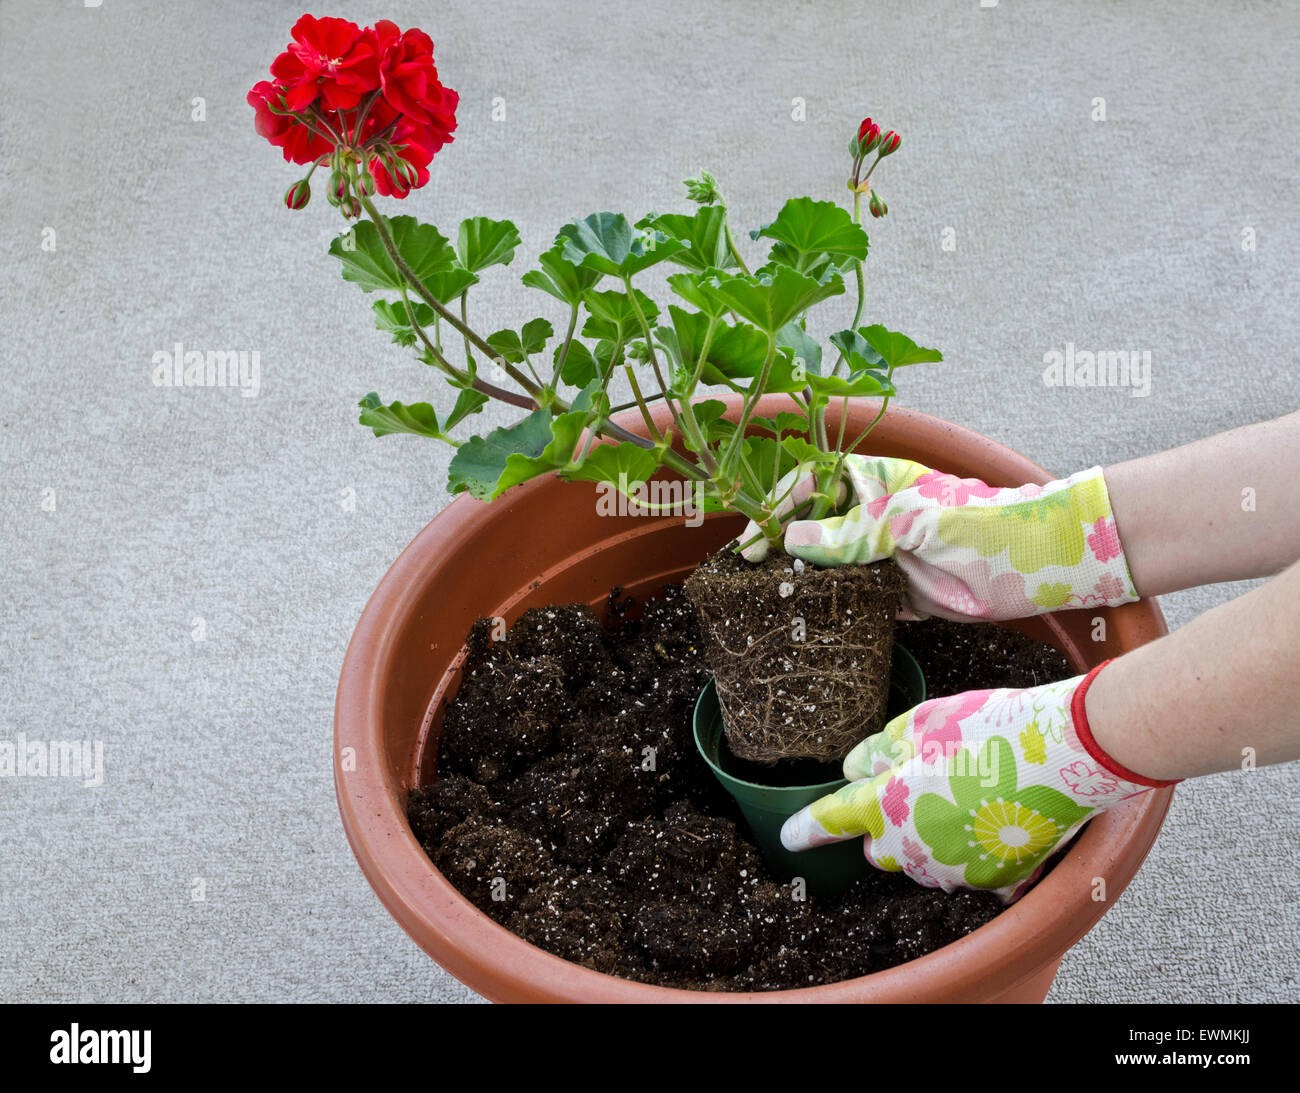 container-gardening-potting-a-plant-step